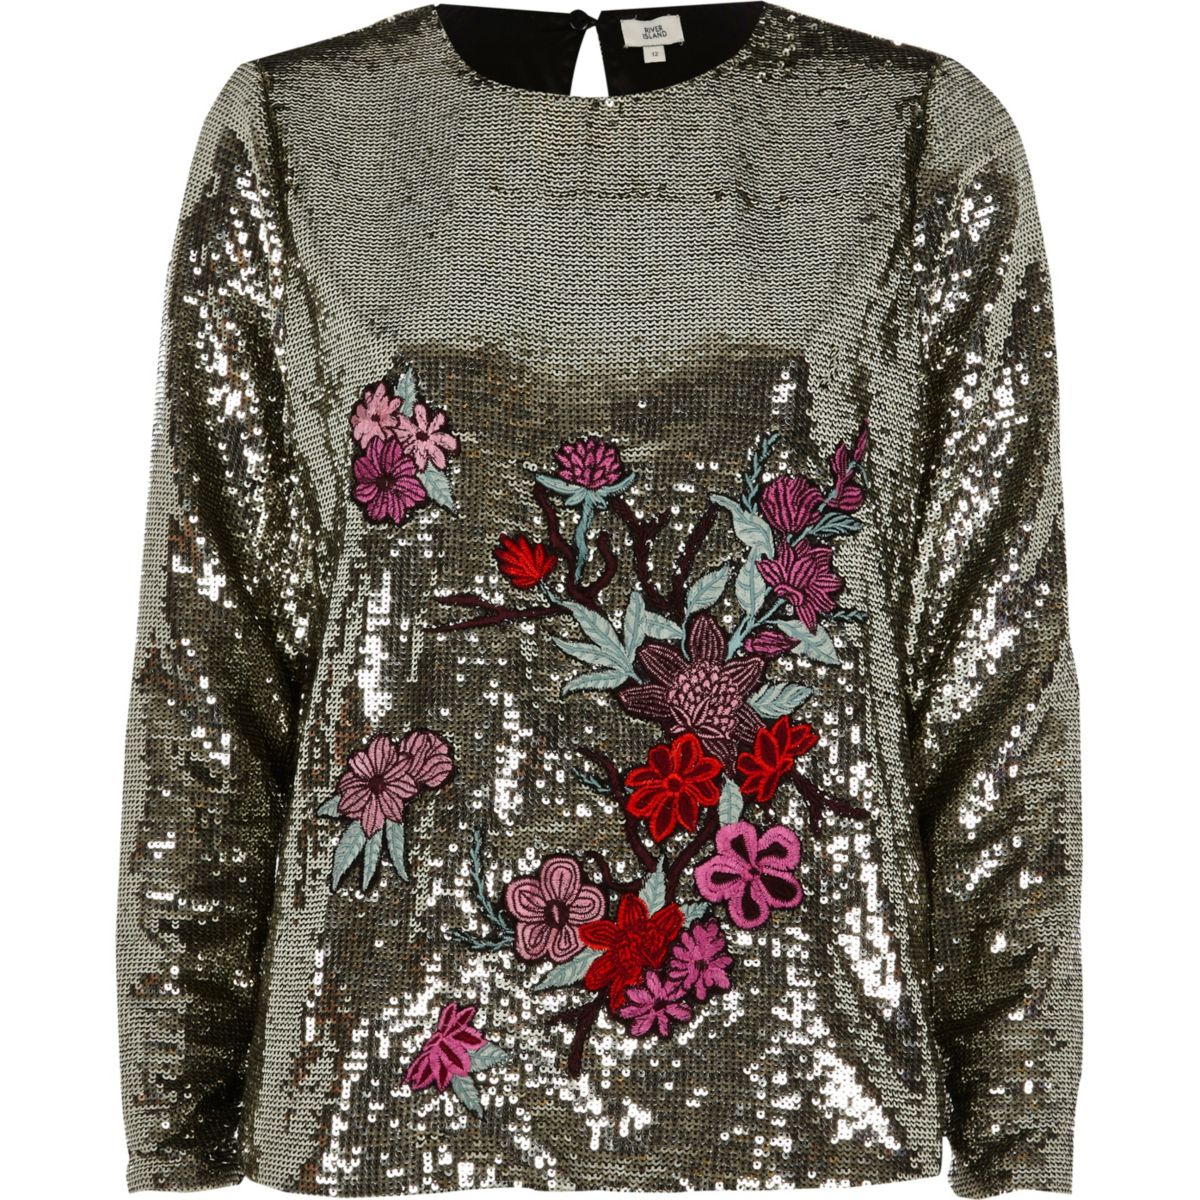 Silver sequin floral embroidered top